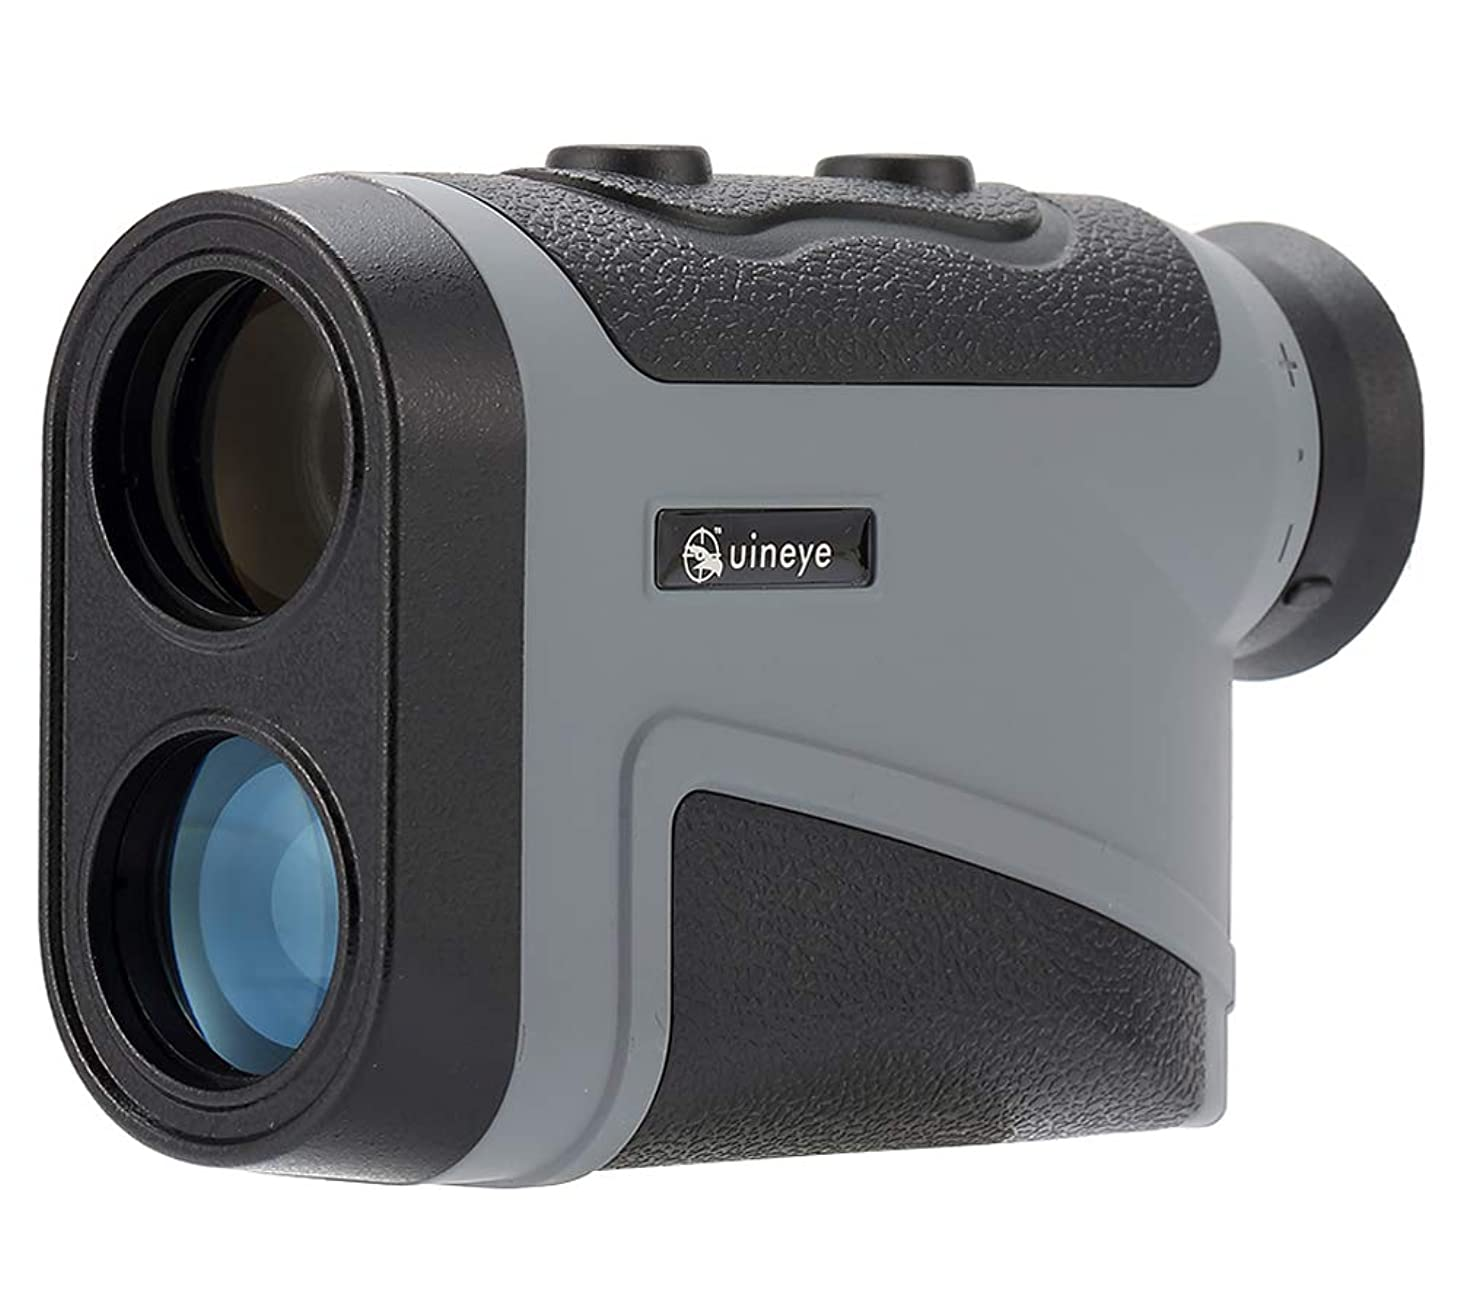 Uineye Golf Rangefinder - Range : 5-1800, 1200,1000 Meters, 0.3 Meters Accuracy, Laser Rangefinder with Height, Angle, Horizontal Distance Measurement